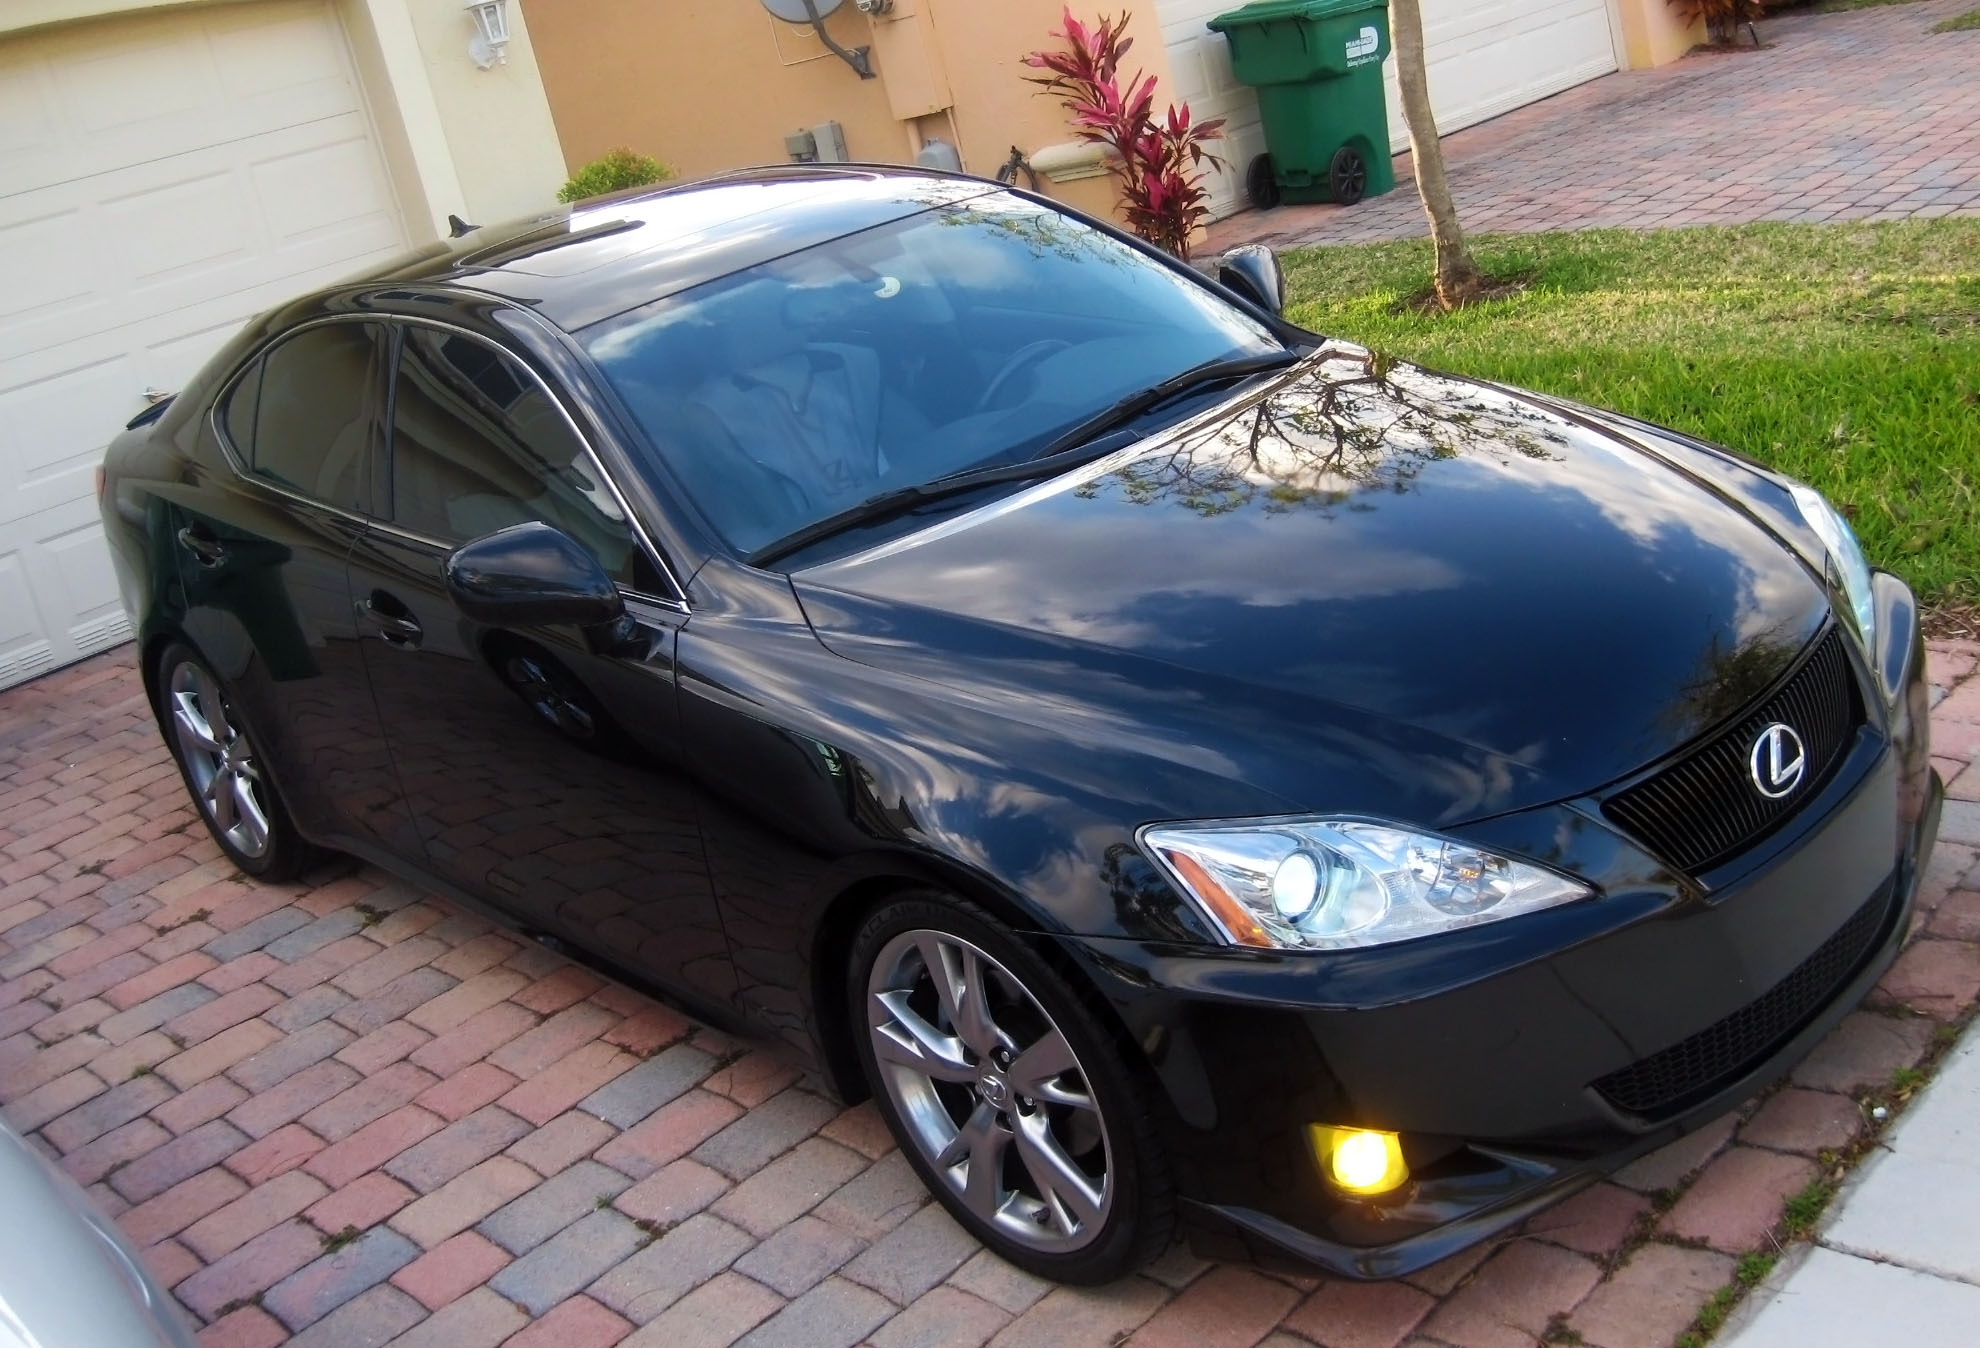 KHISX50's 2007 Lexus IS